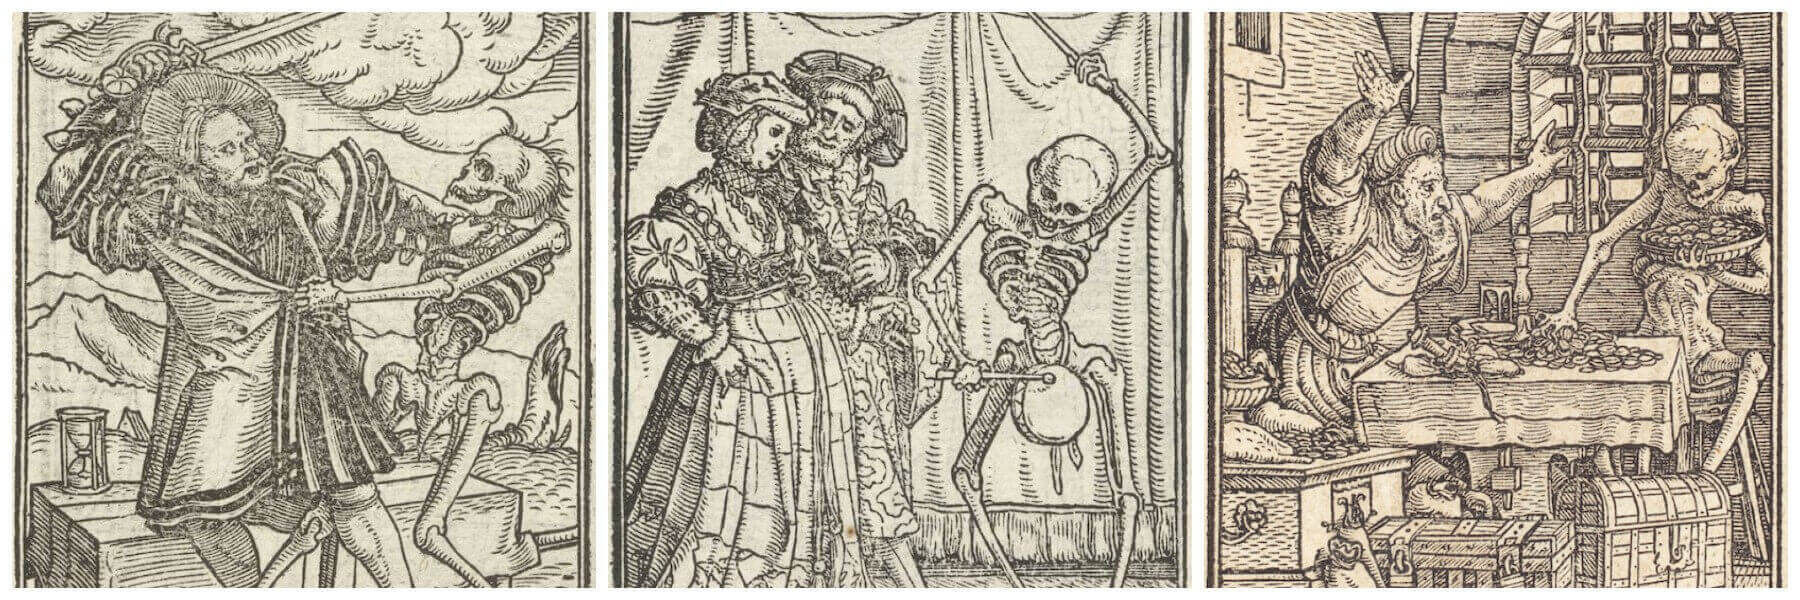 Collage of woodcut prints produced by Hans Holbein the Younger featuring death a skeleton approaching with characters: grabbing a nobleman, playing music to a lady and taking money from a miser